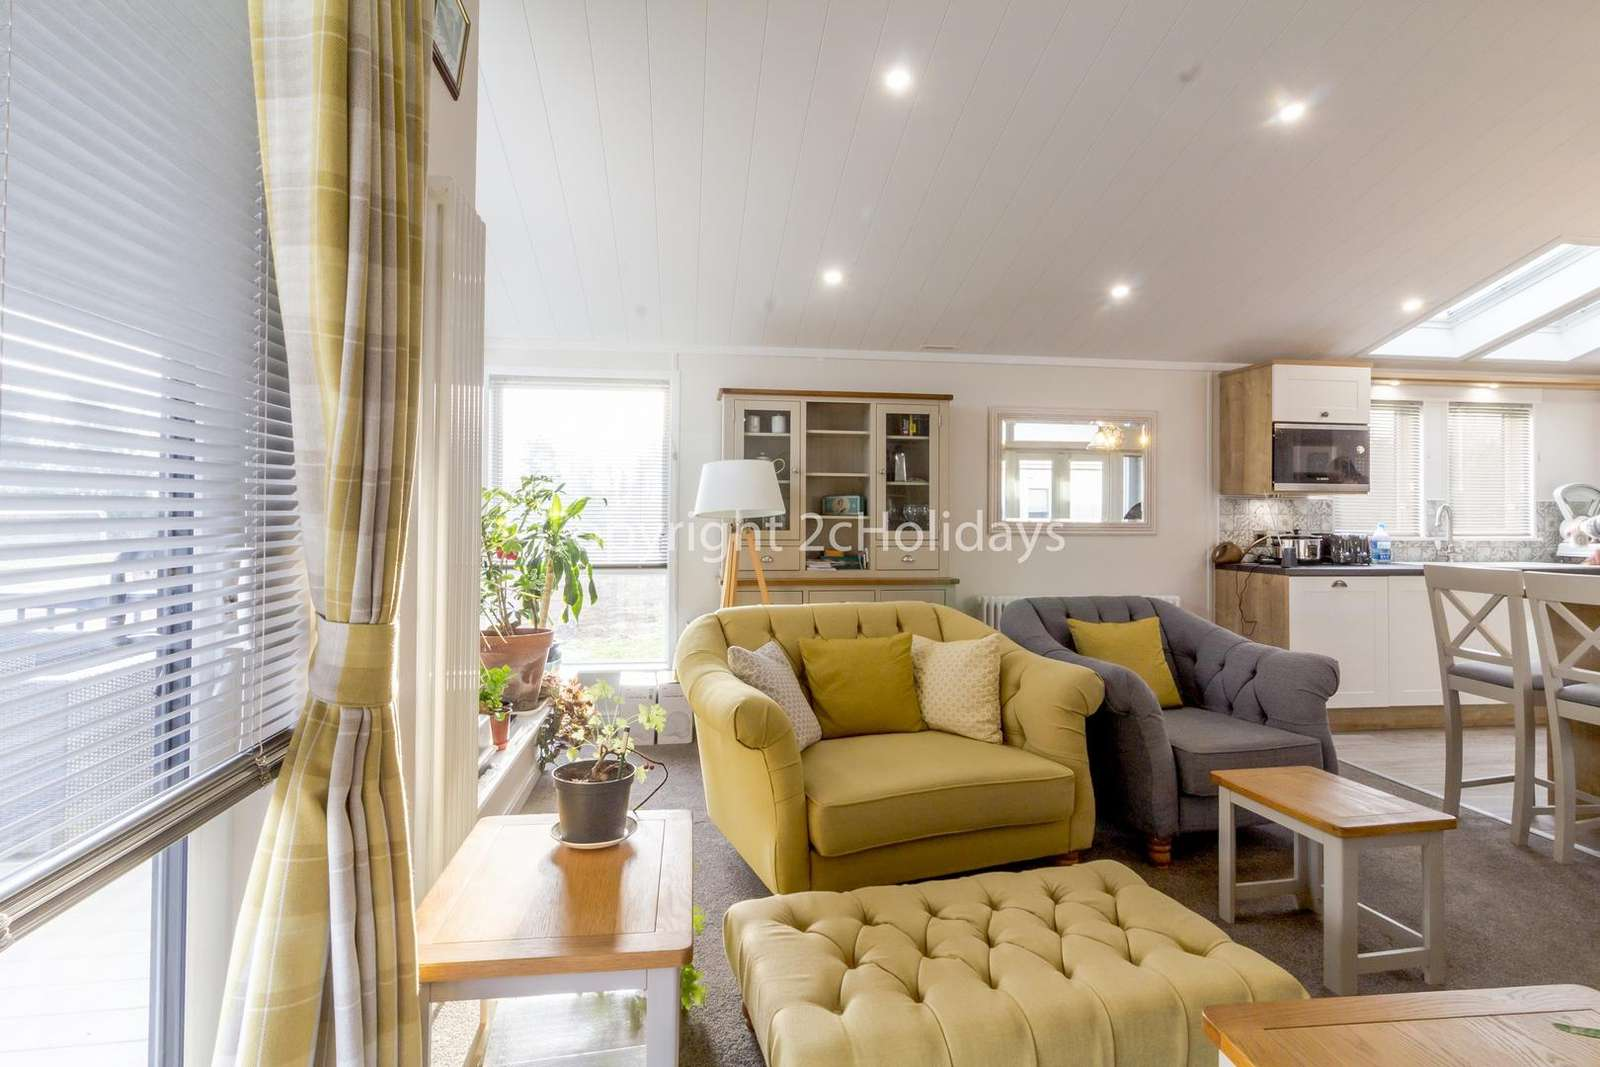 Modern but cosy lounge, great for families!